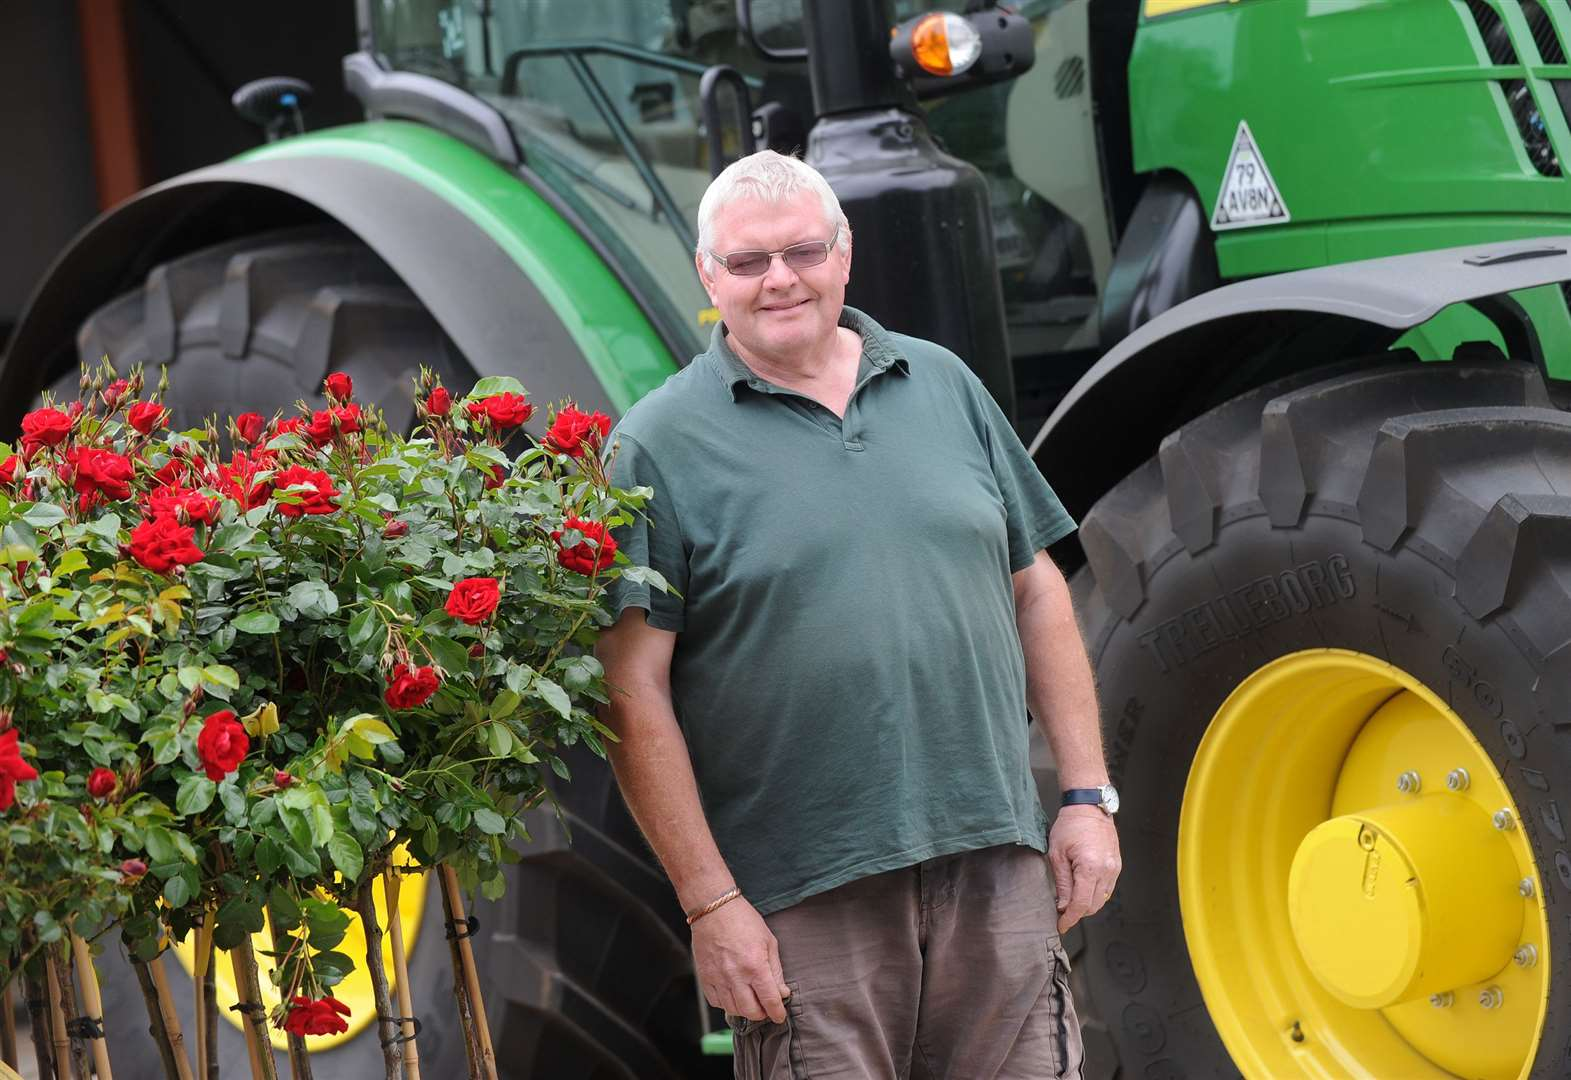 School project blooms into 40 year career growing roses